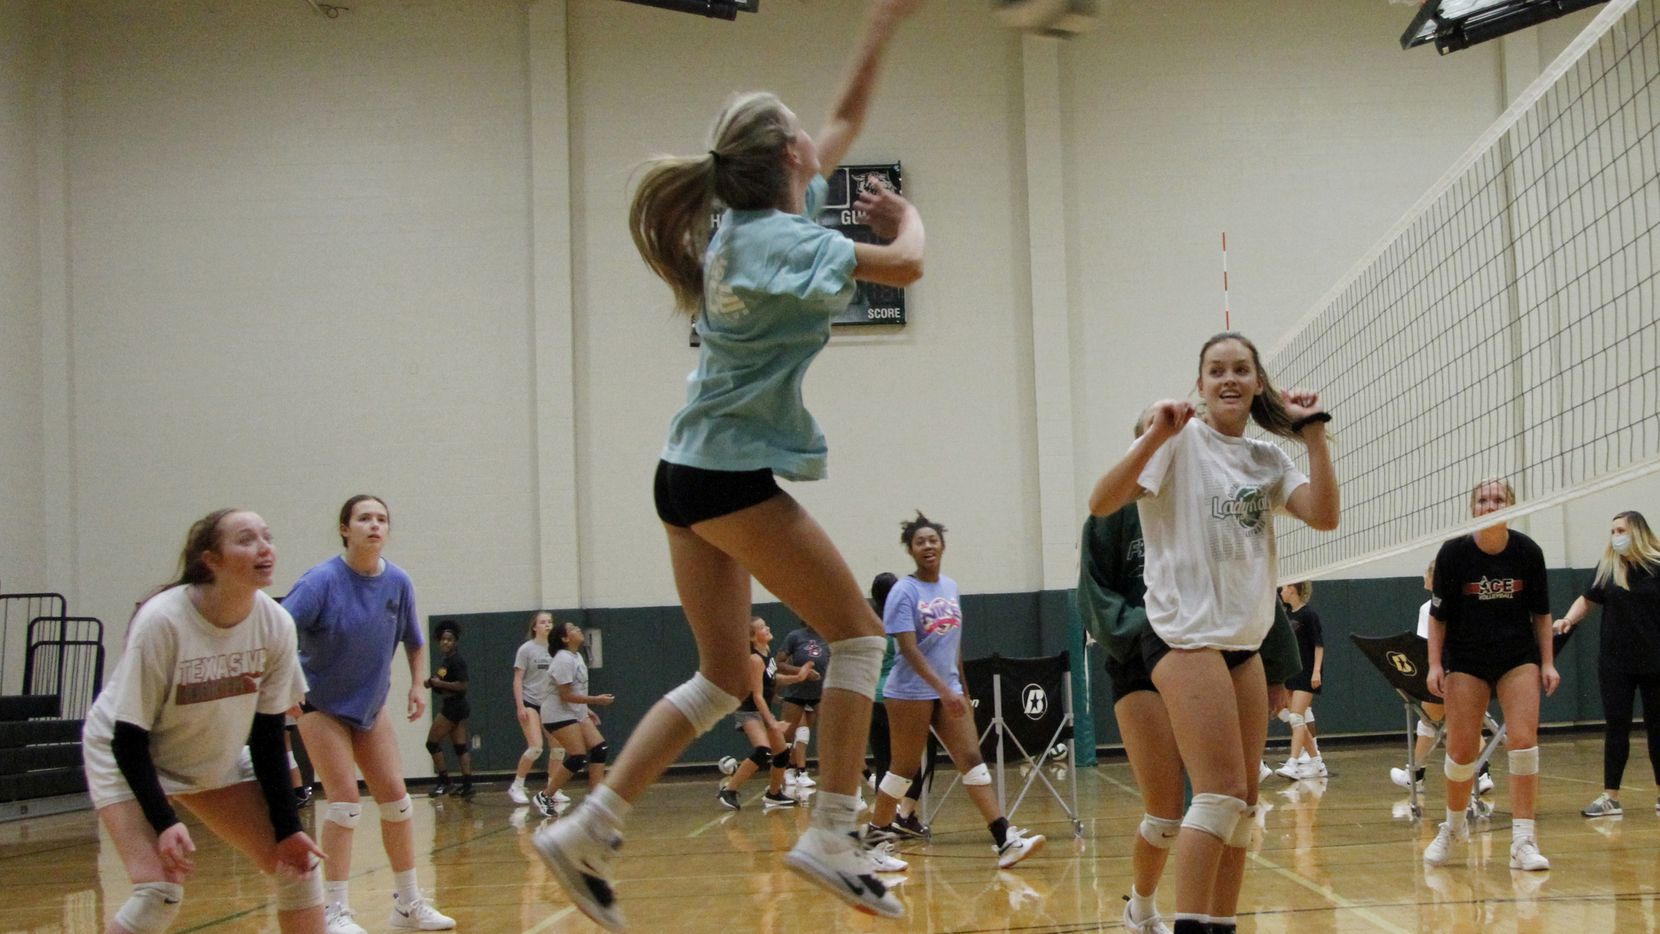 Grayson Reed skies to fire a shot as she is flanked by teammates Tatum Pavey, left, and Bryley Steinhilber, right, during a practice session for the Kennedale Lady Kats volleyball team. Under the direction of head coach Kelly Carl, the team conducted their first practice of the season at Kennedale High School in Kennedale on August 03, 2020.(Steve Hamm/ Special Contributor)